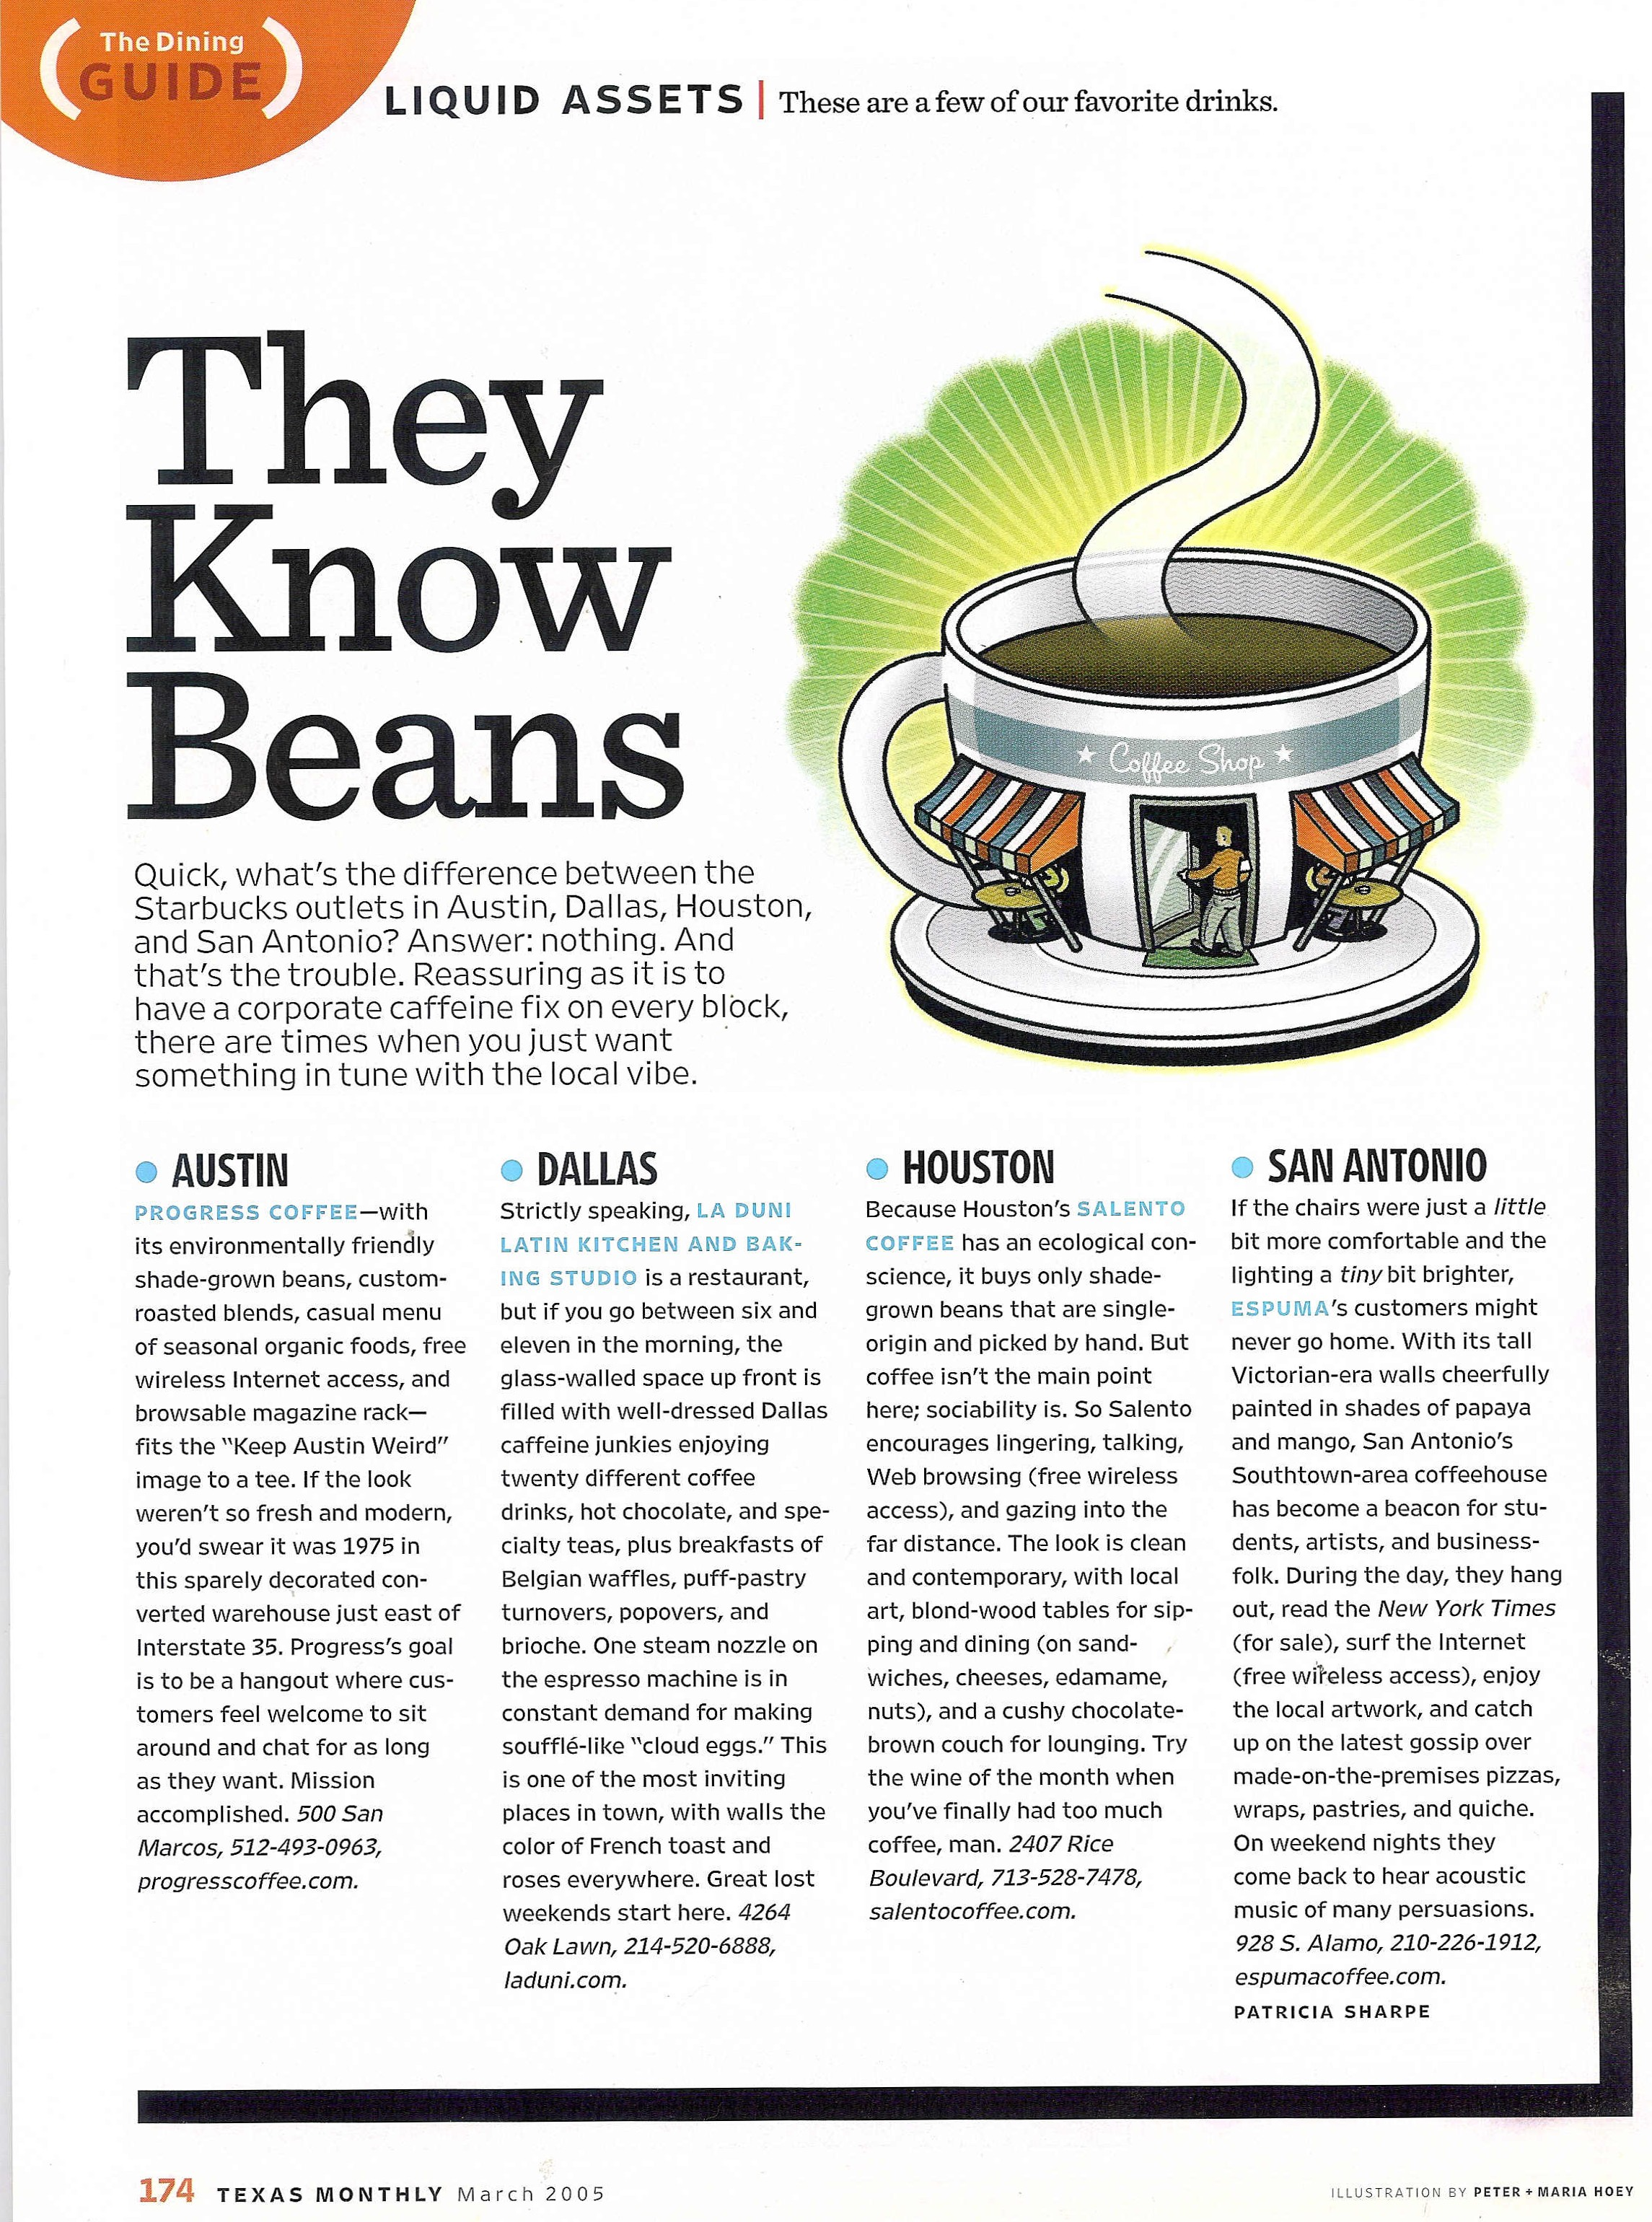 84 Texas Monthly Copy Coffee Beans